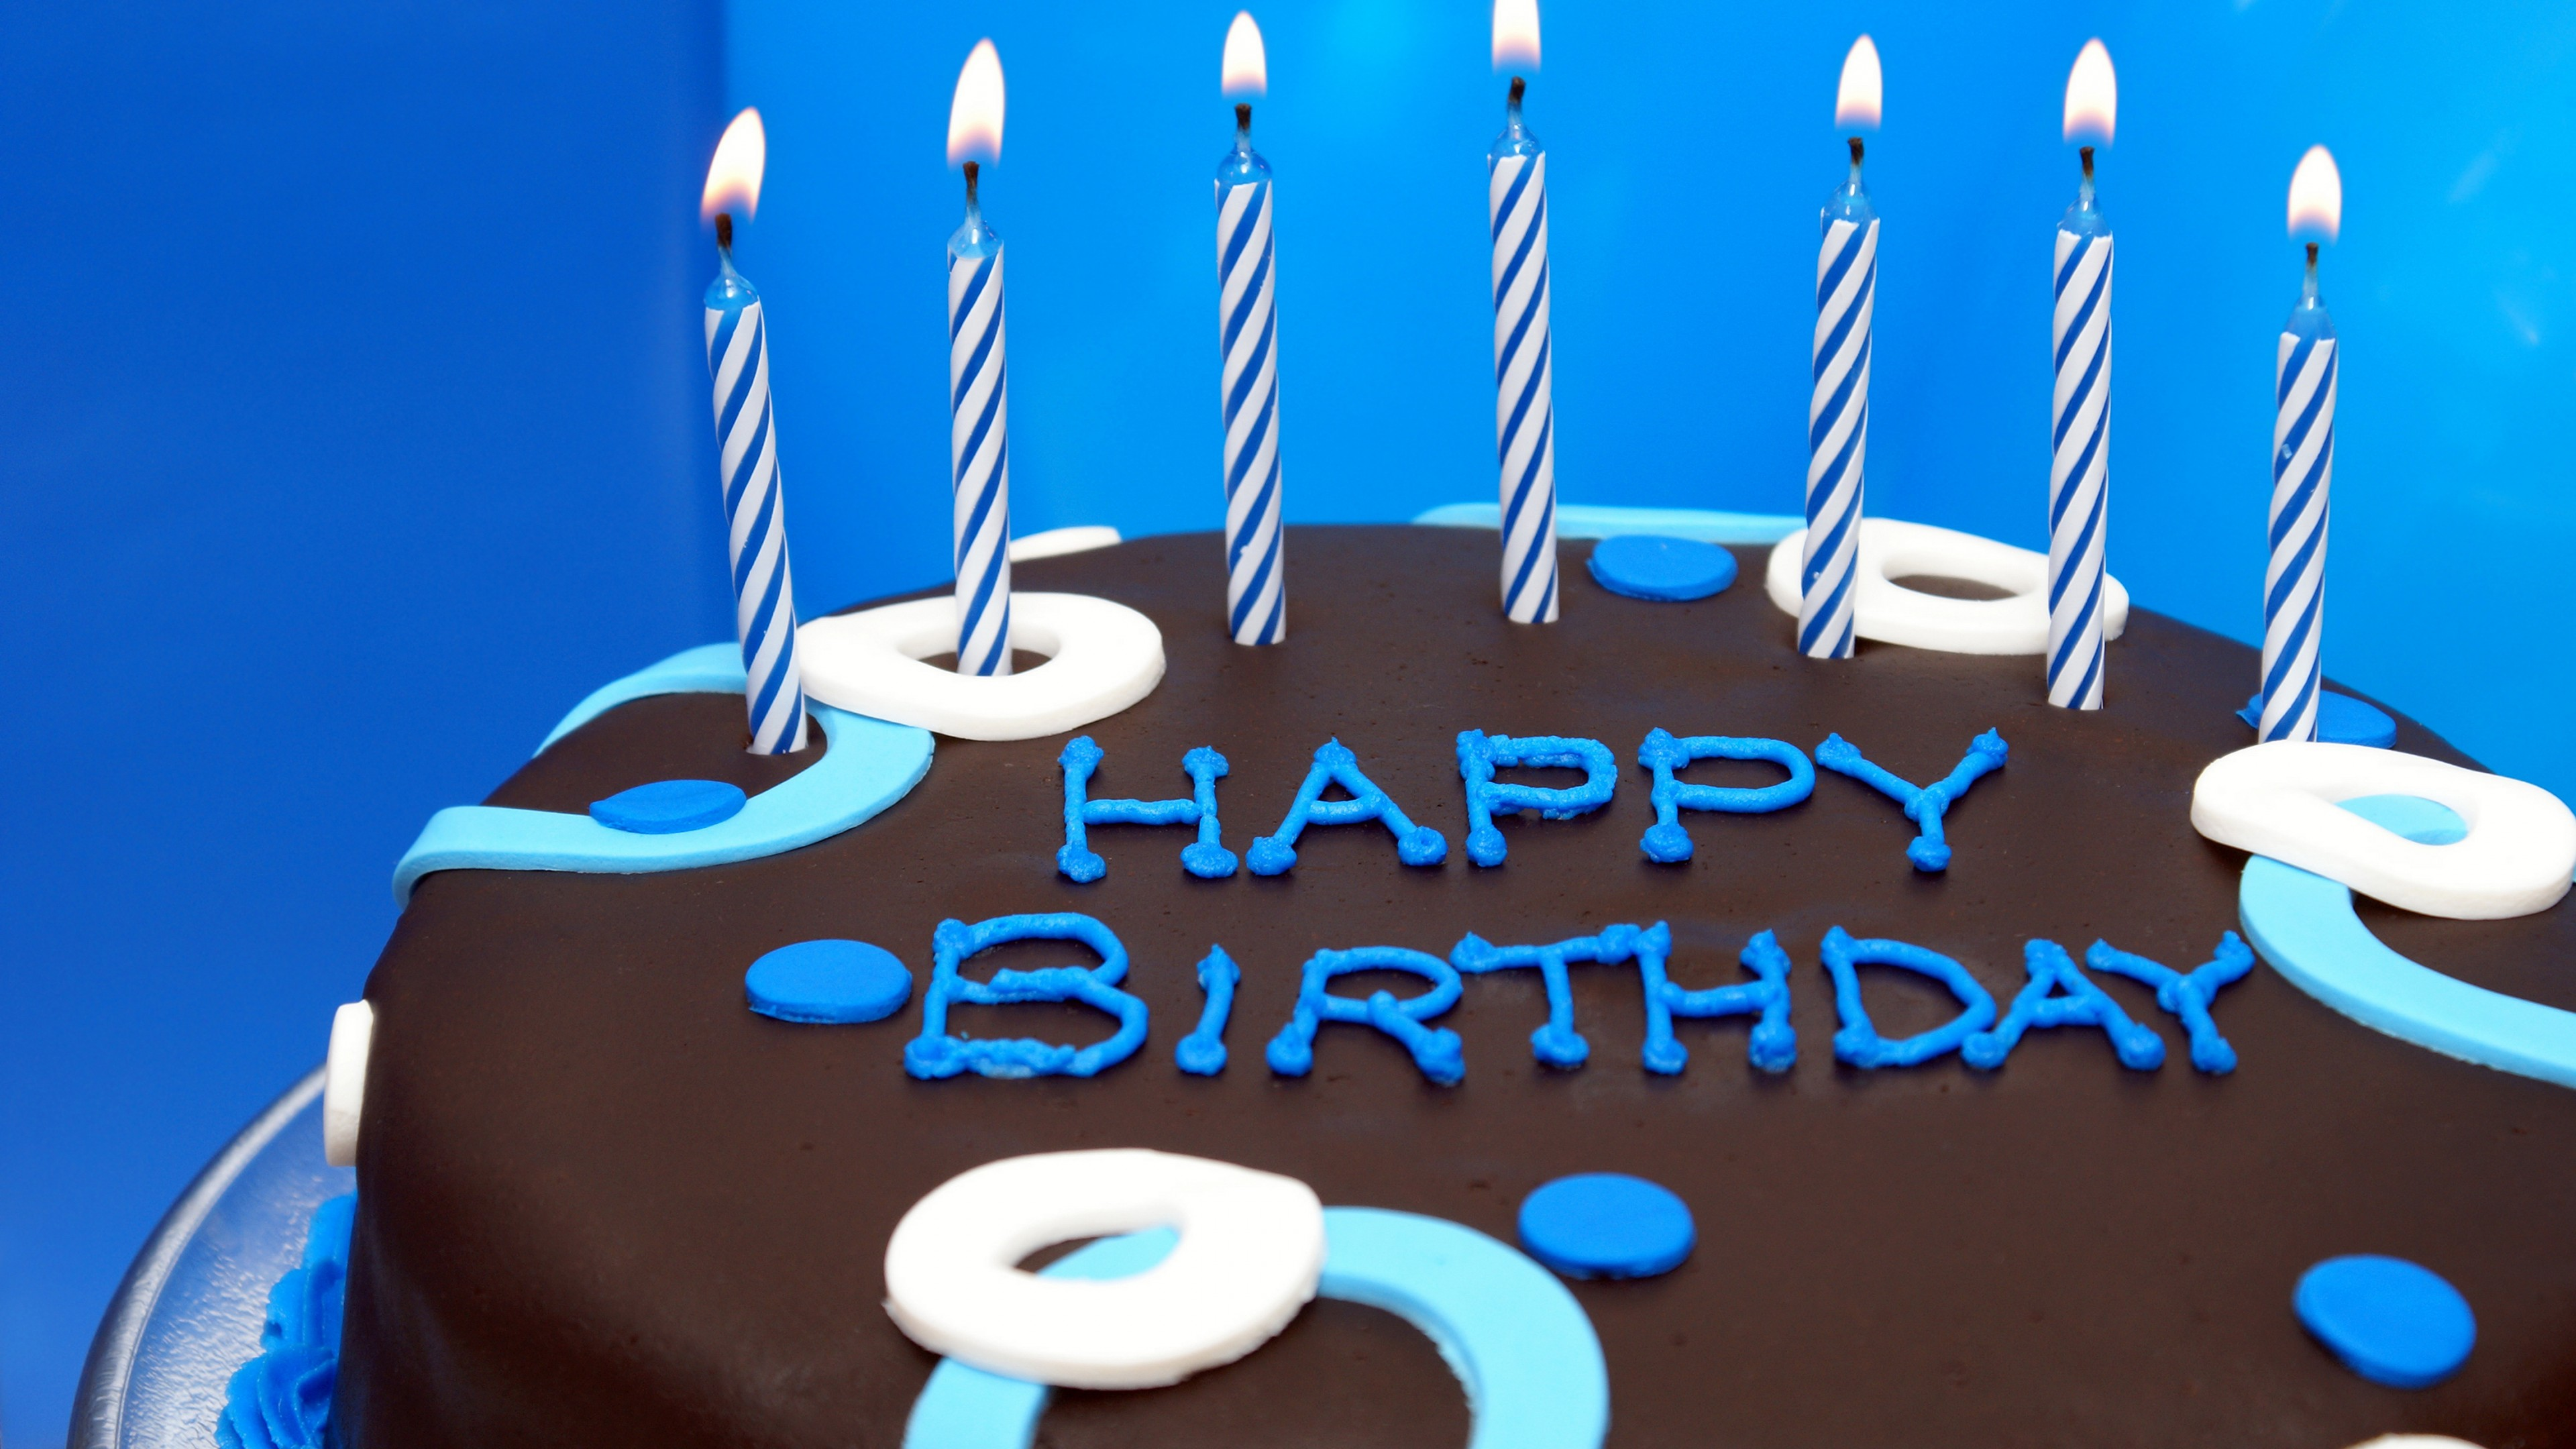 happy birthday wallpaper images ; happy-birthday-3840x2160-cake-candles-4k-6273